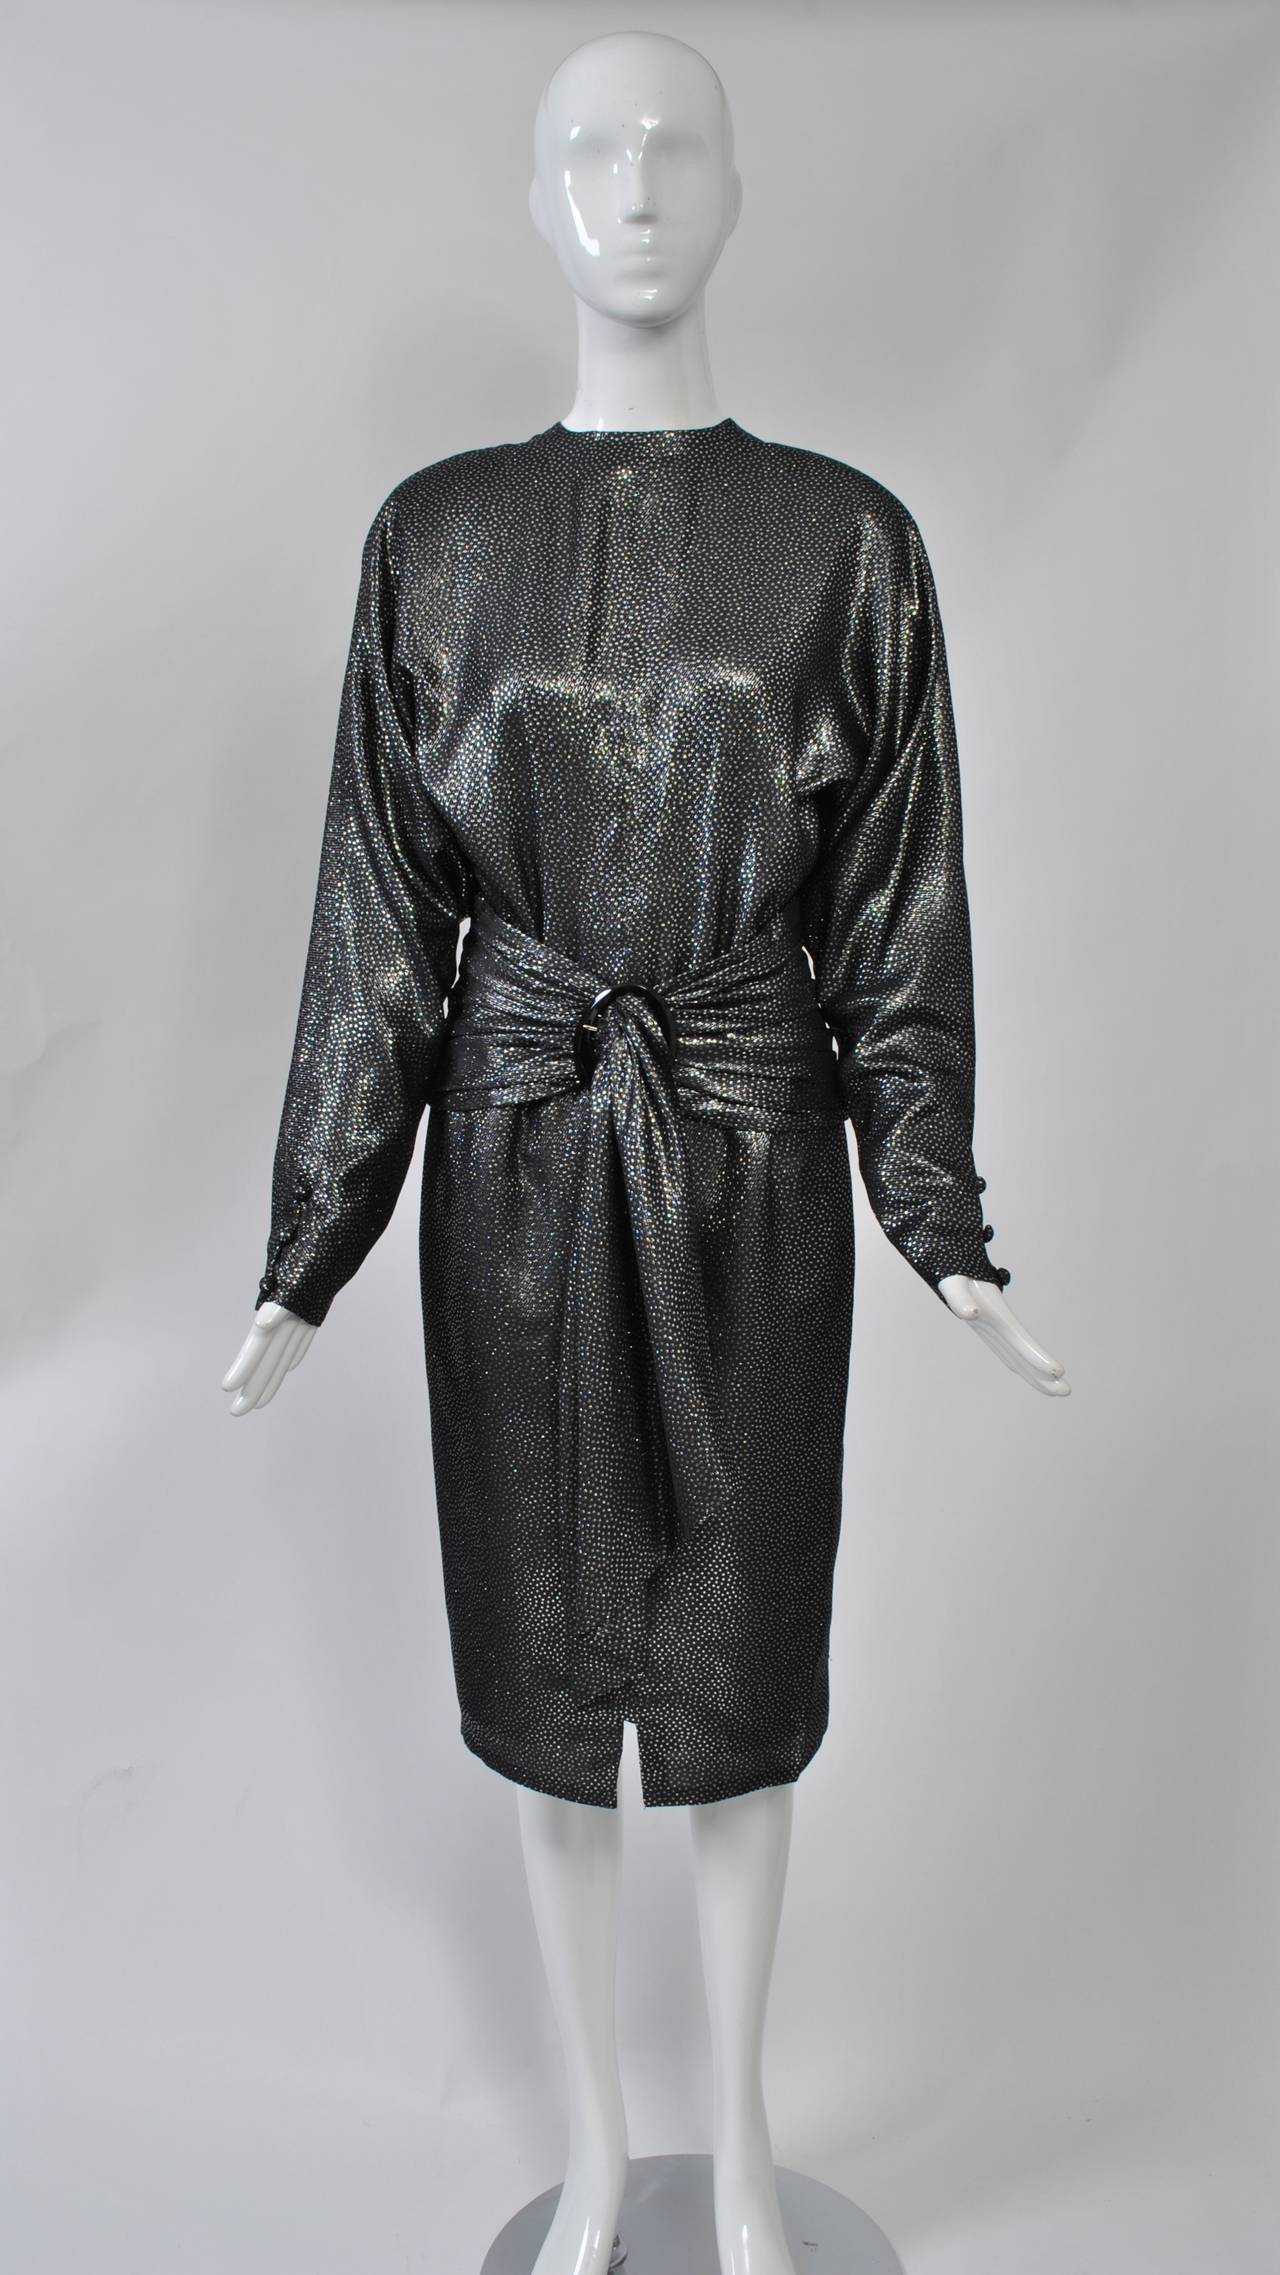 jean louis scherrer 1980s metallic dress for sale at 1stdibs. Black Bedroom Furniture Sets. Home Design Ideas